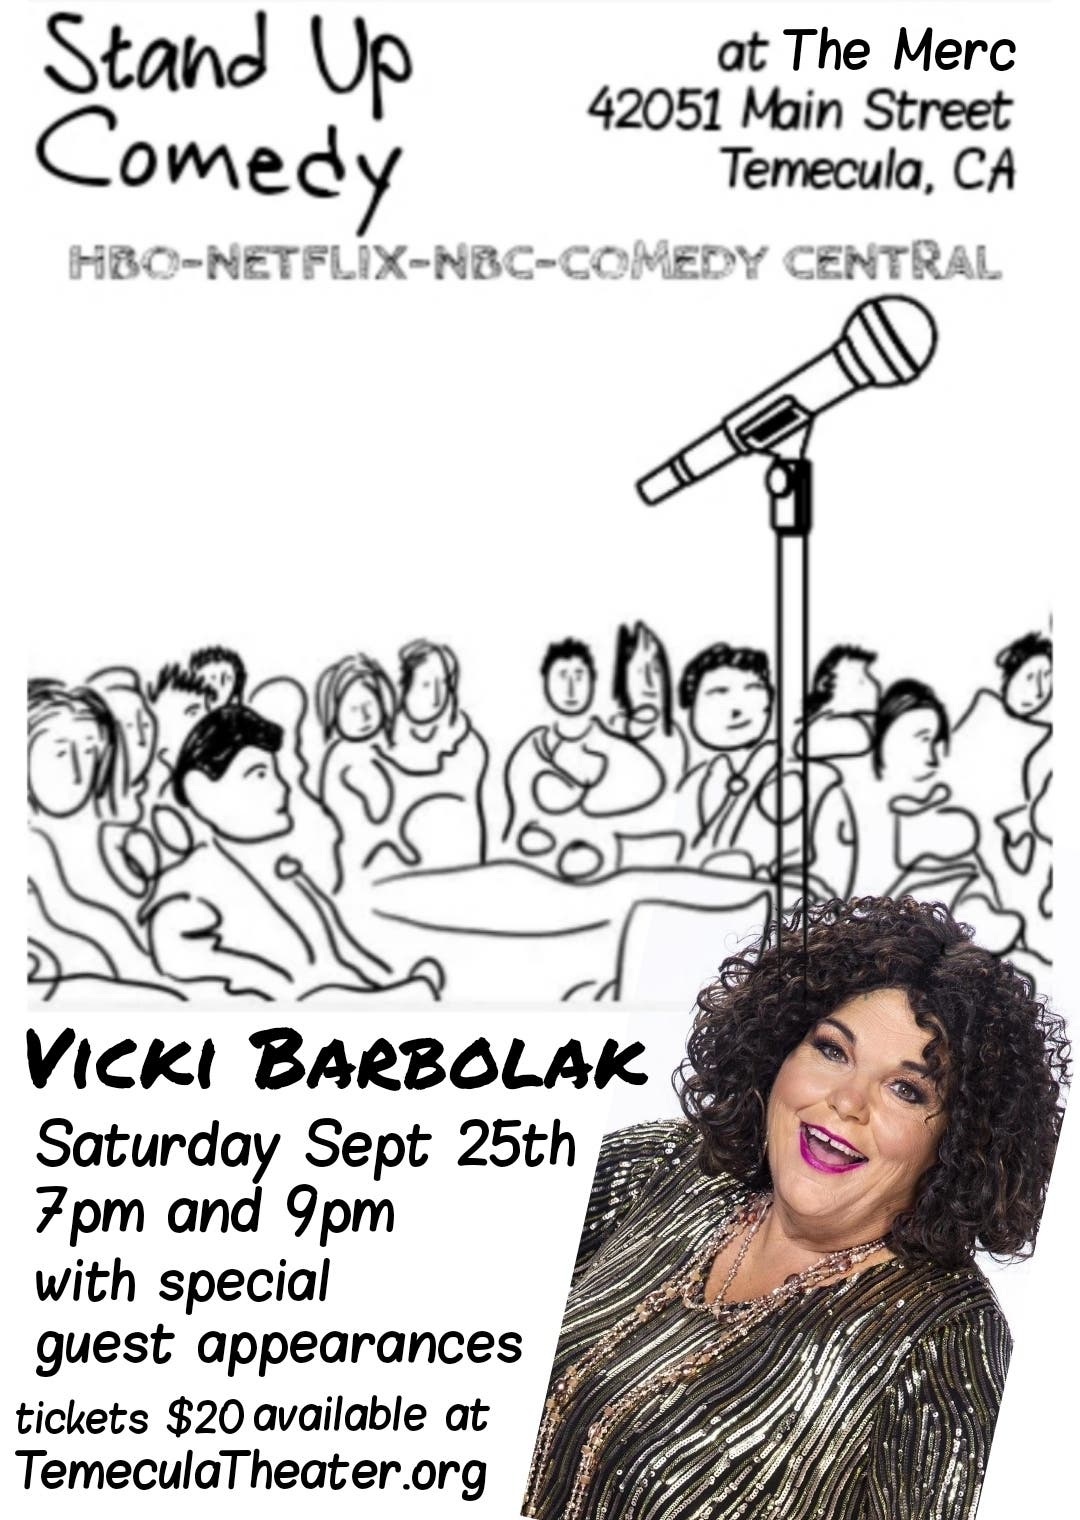 Stand Up Comedy at The Merc with VICKI BARBOLAK